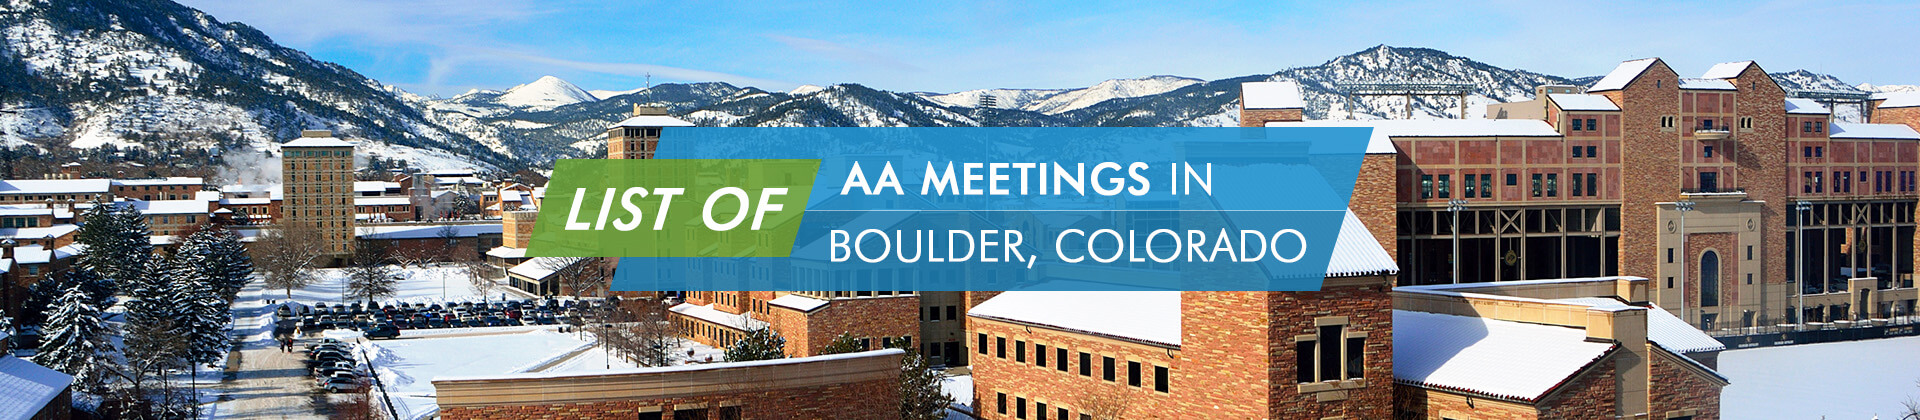 AA Meetings Boulder Colorado